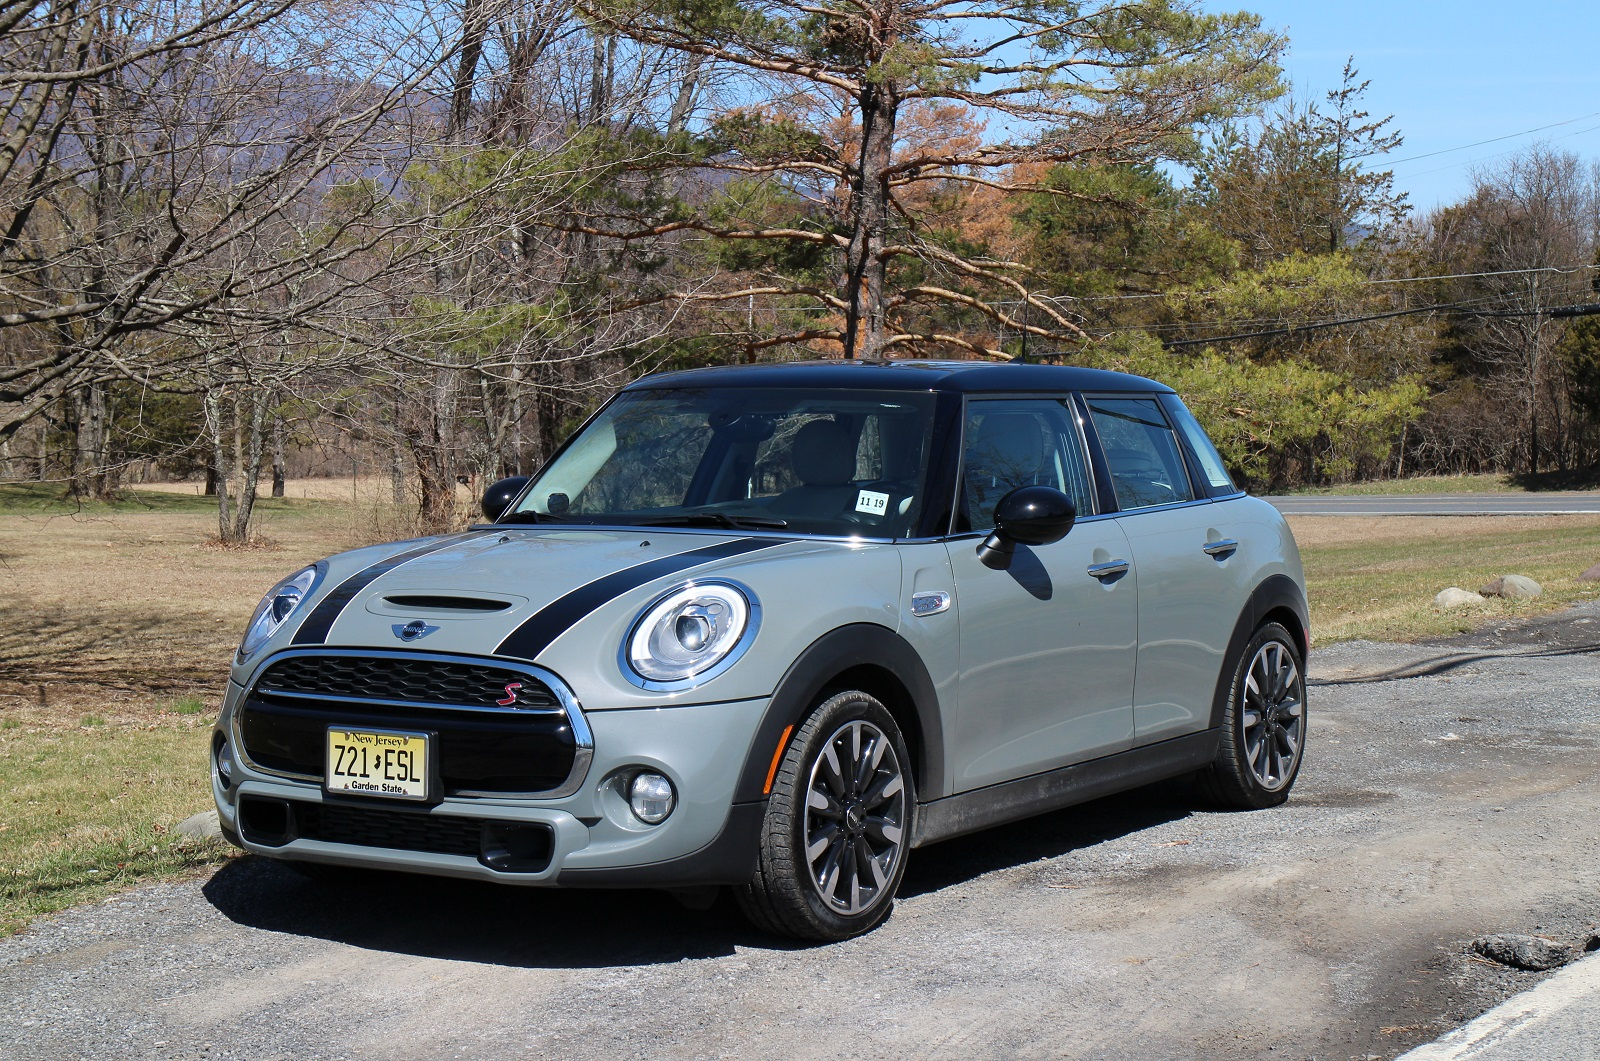 2015 mini cooper s hardtop 4 door gas mileage review rh greencarreports com 2004 mini cooper s manual transmission problems 2004 mini cooper s manual transmission